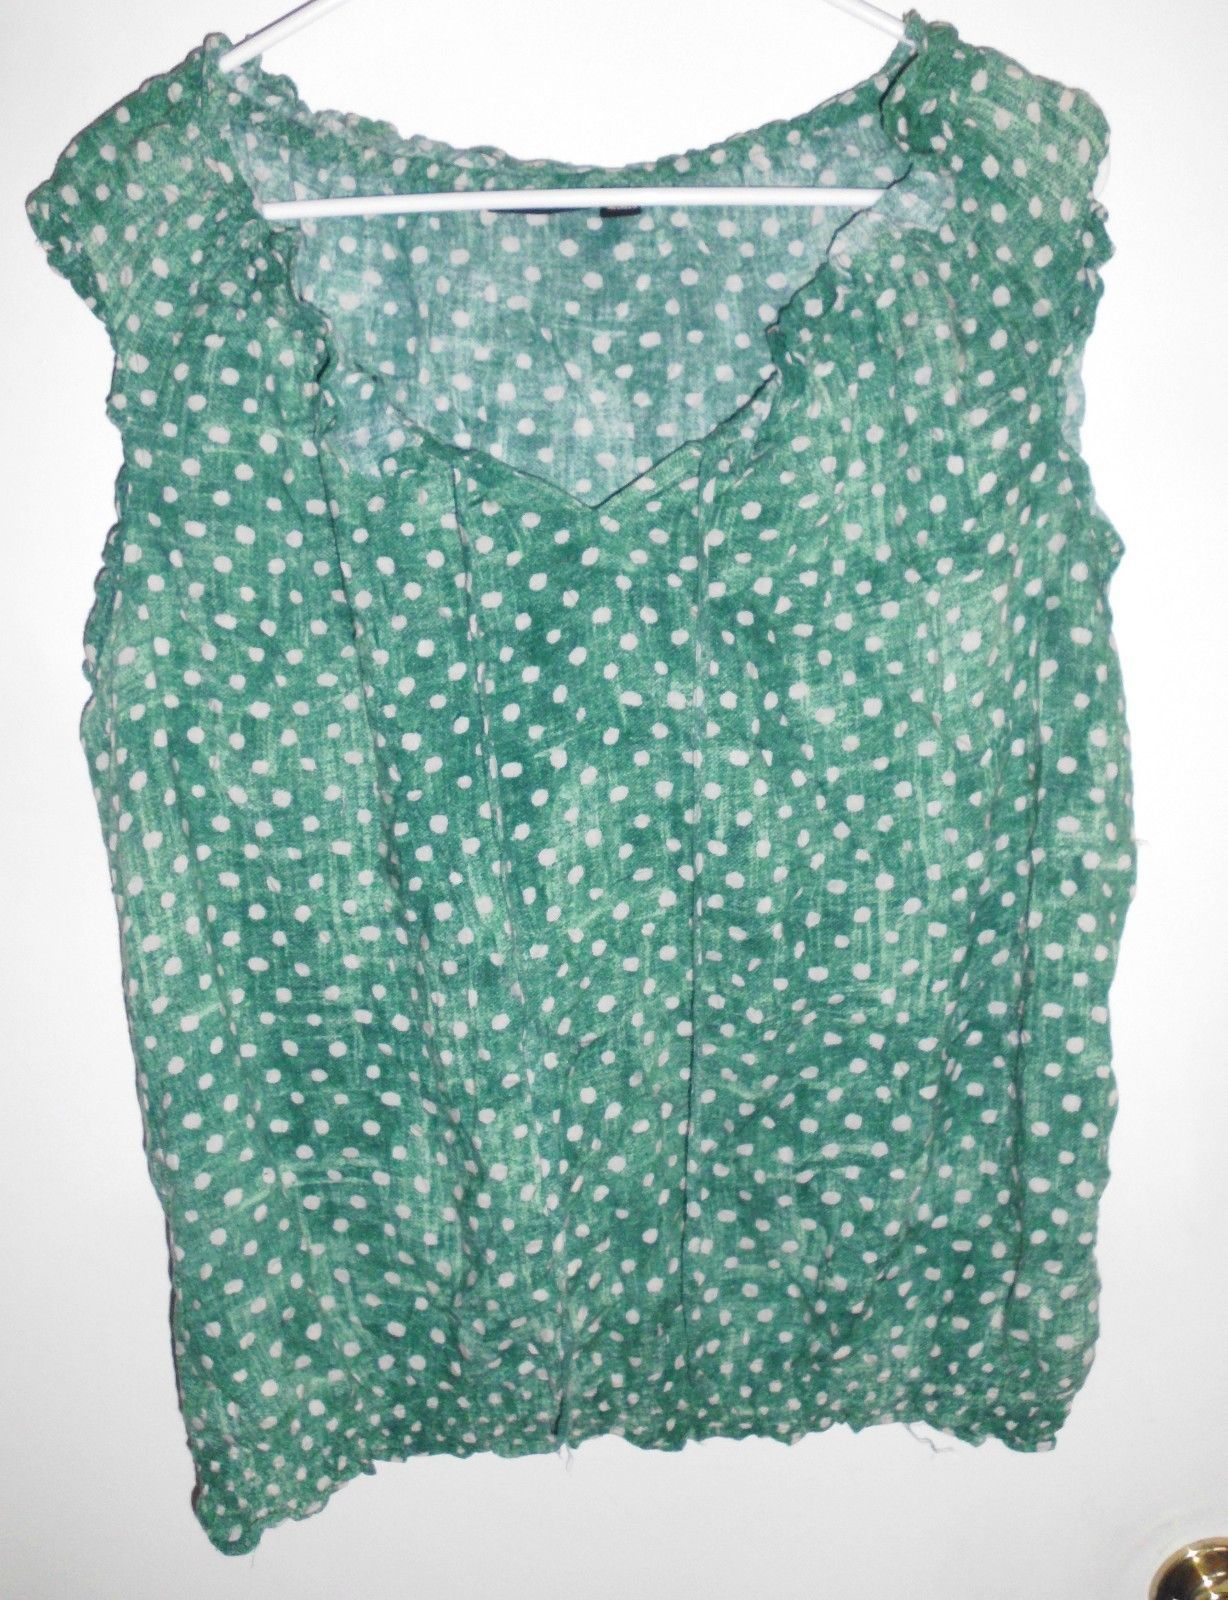 Primary image for A.N.A. A NEW APPROACH Shirt X-LARGE Women Green White Polka Dot Top